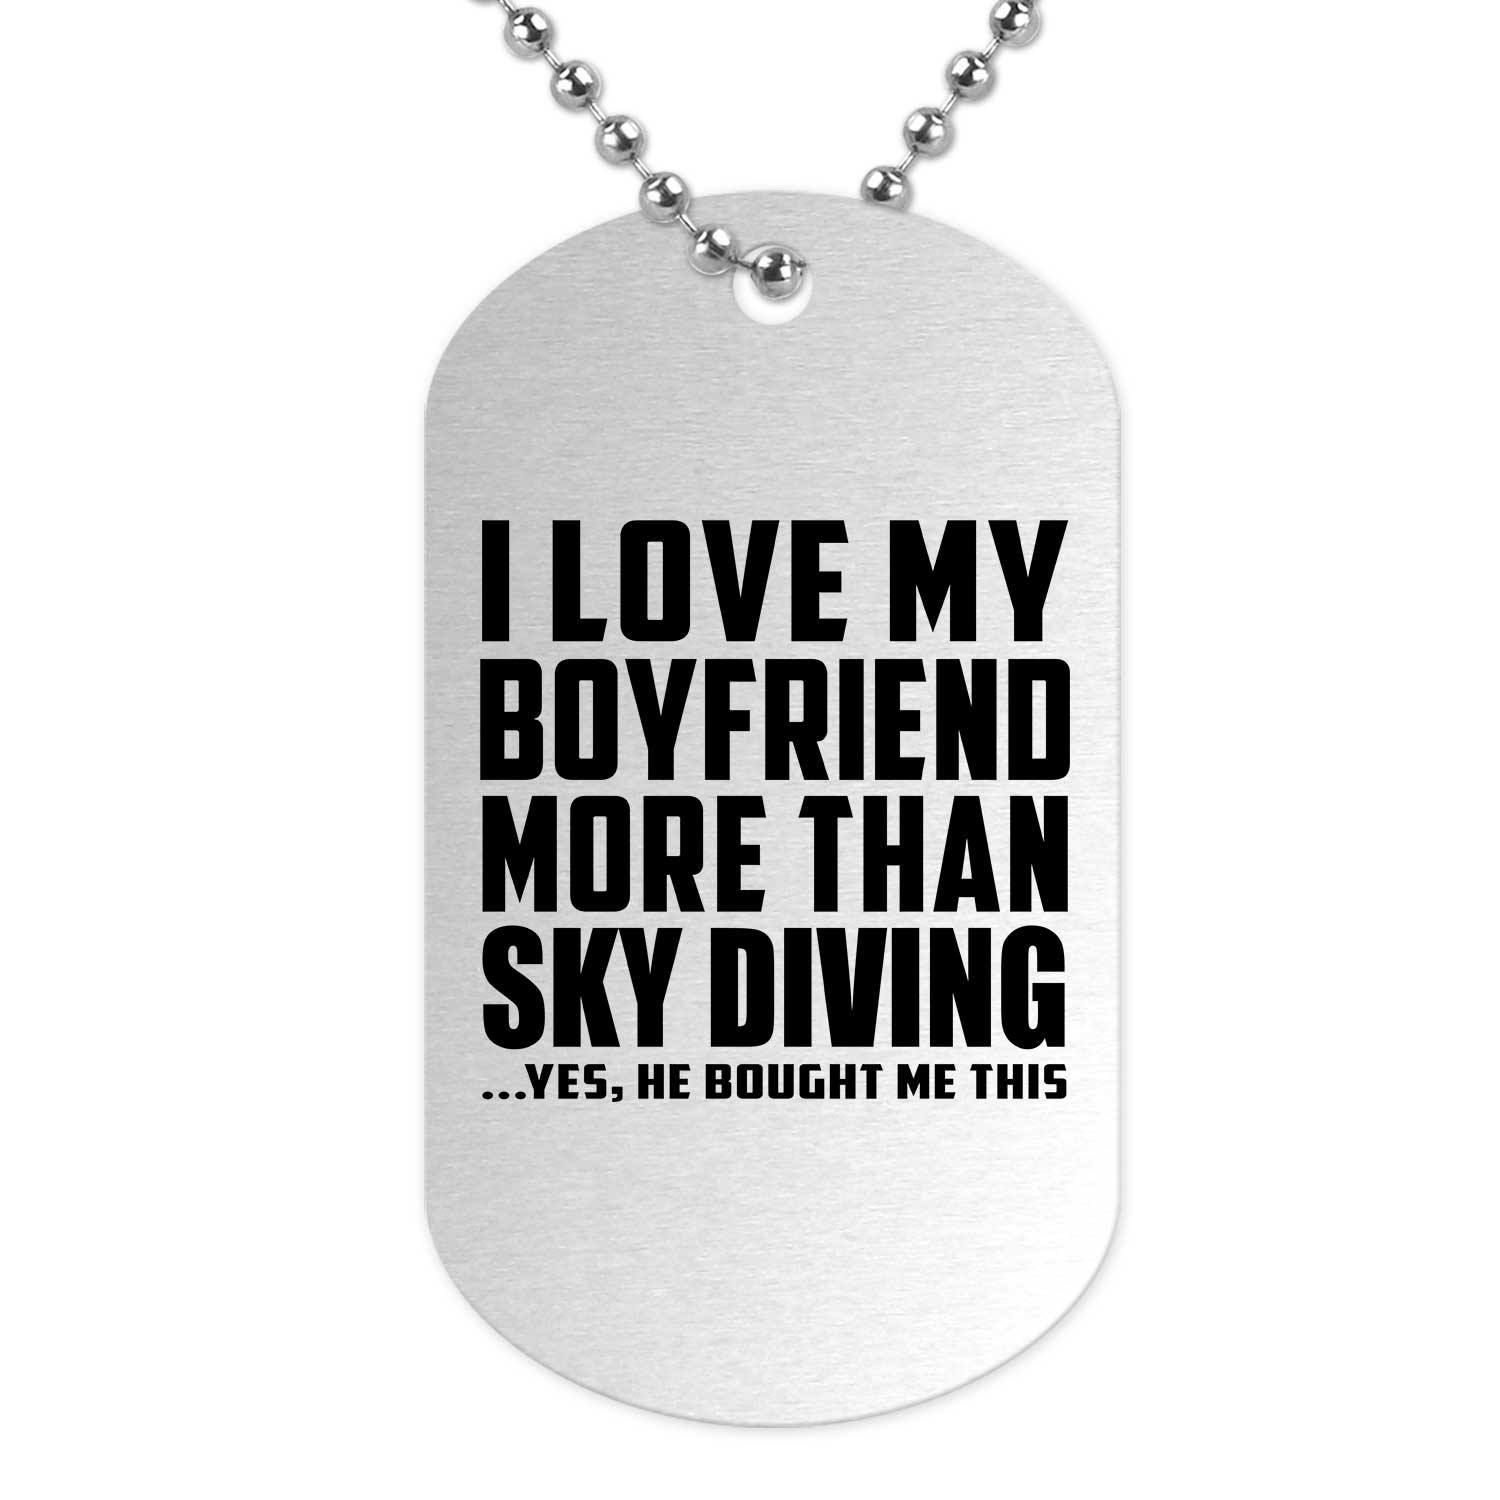 I Love My Boyfriend More Than Sky Diving - Military Dog Tag